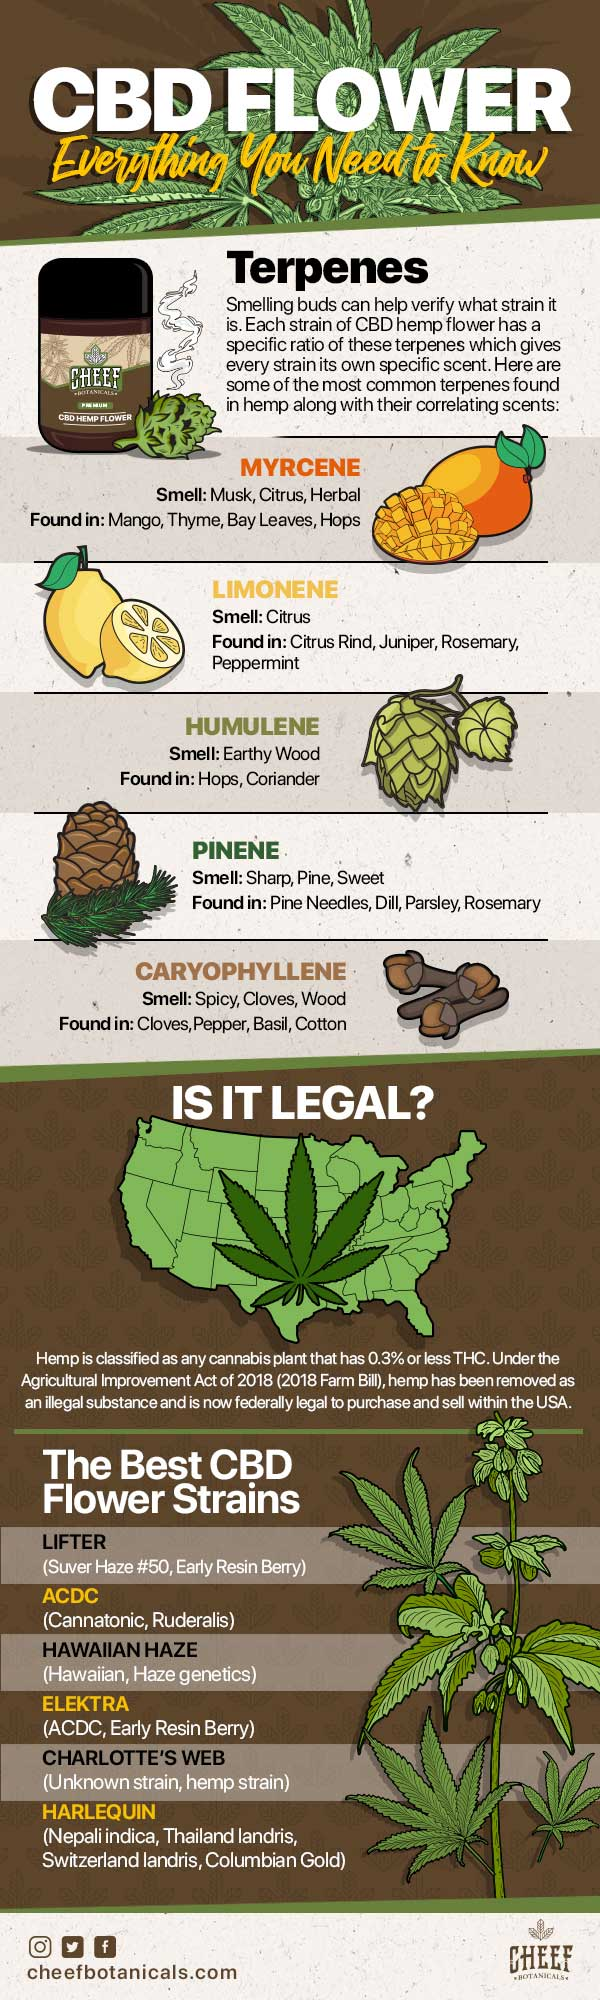 CBD hemp flower terpenes and legal status in the us infographic